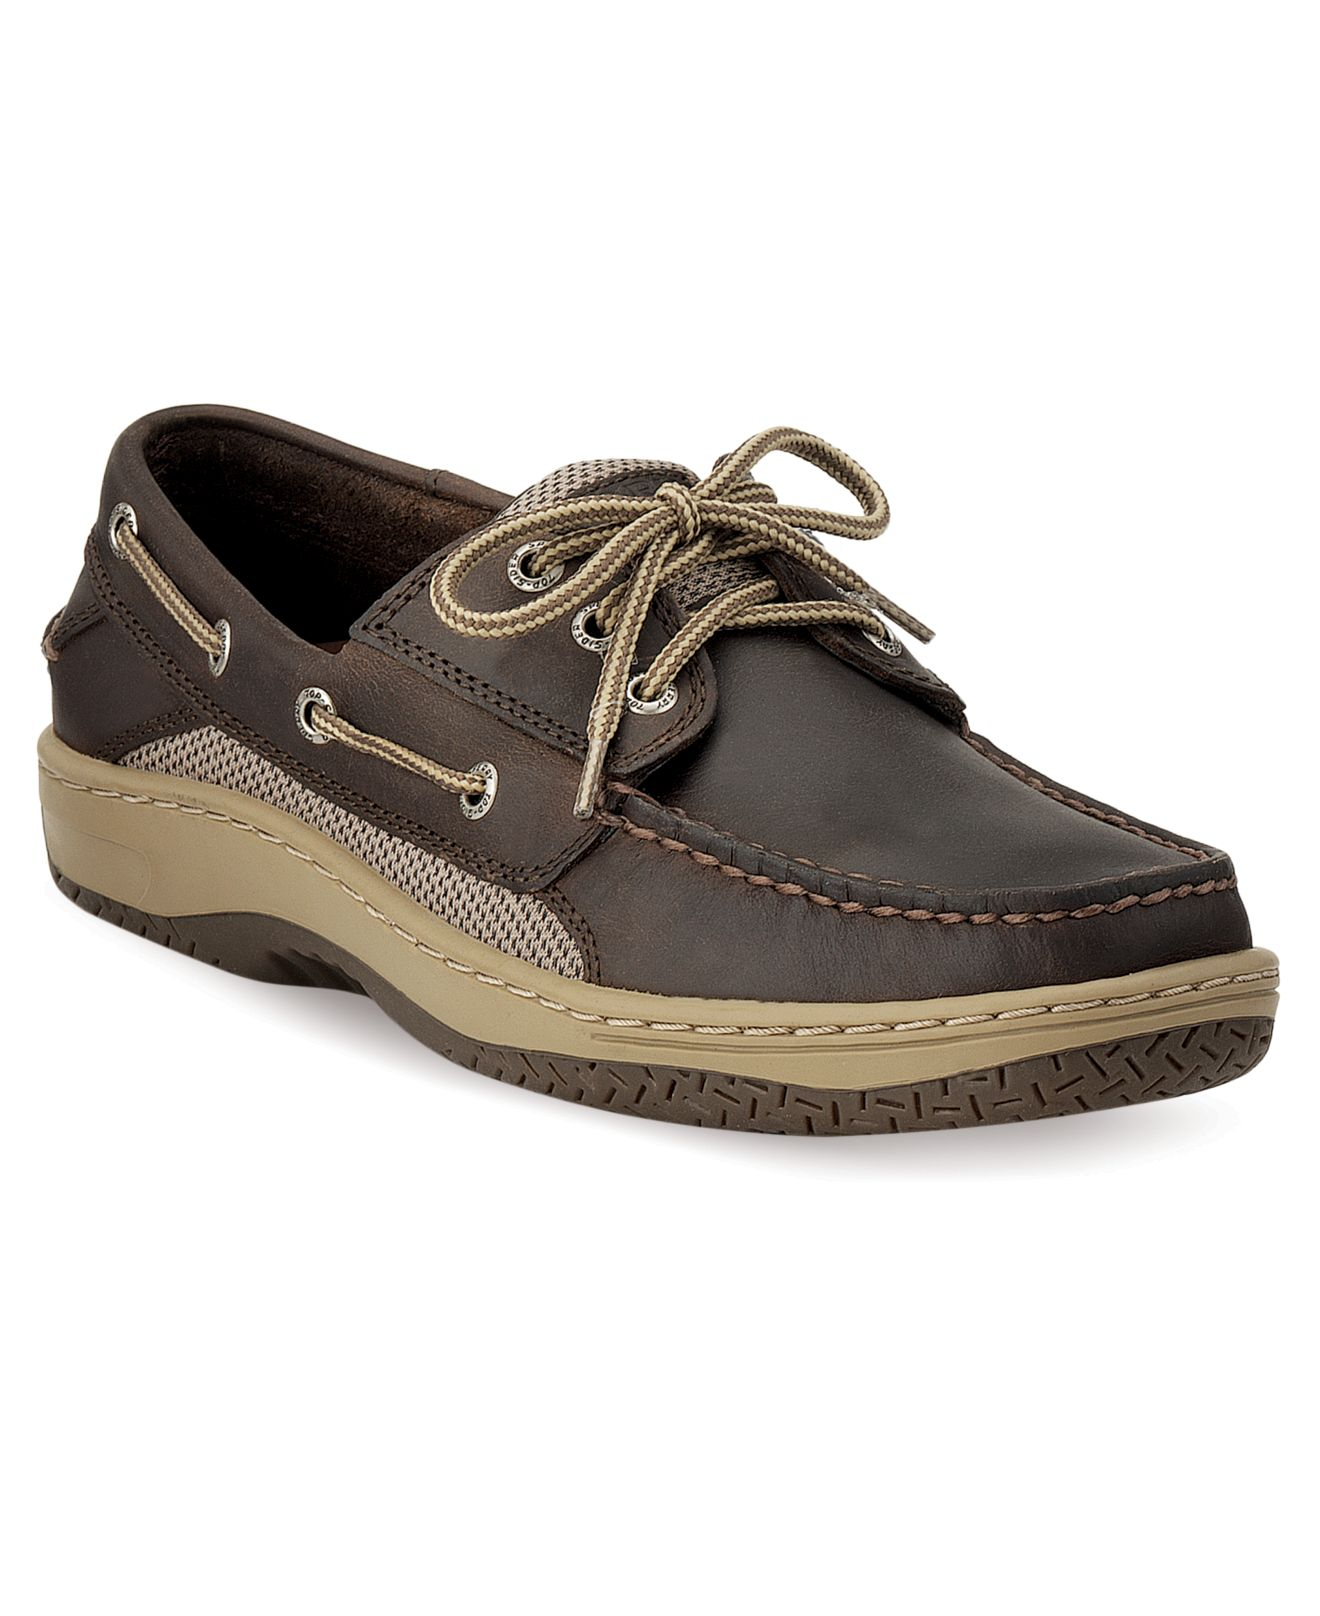 Buy Nunn Bush Men's Cam Slip-on Casual Walking Shoe and other Loafers & Slip-Ons at hocalinkz1.ga Our wide selection is eligible for free shipping and free returns.